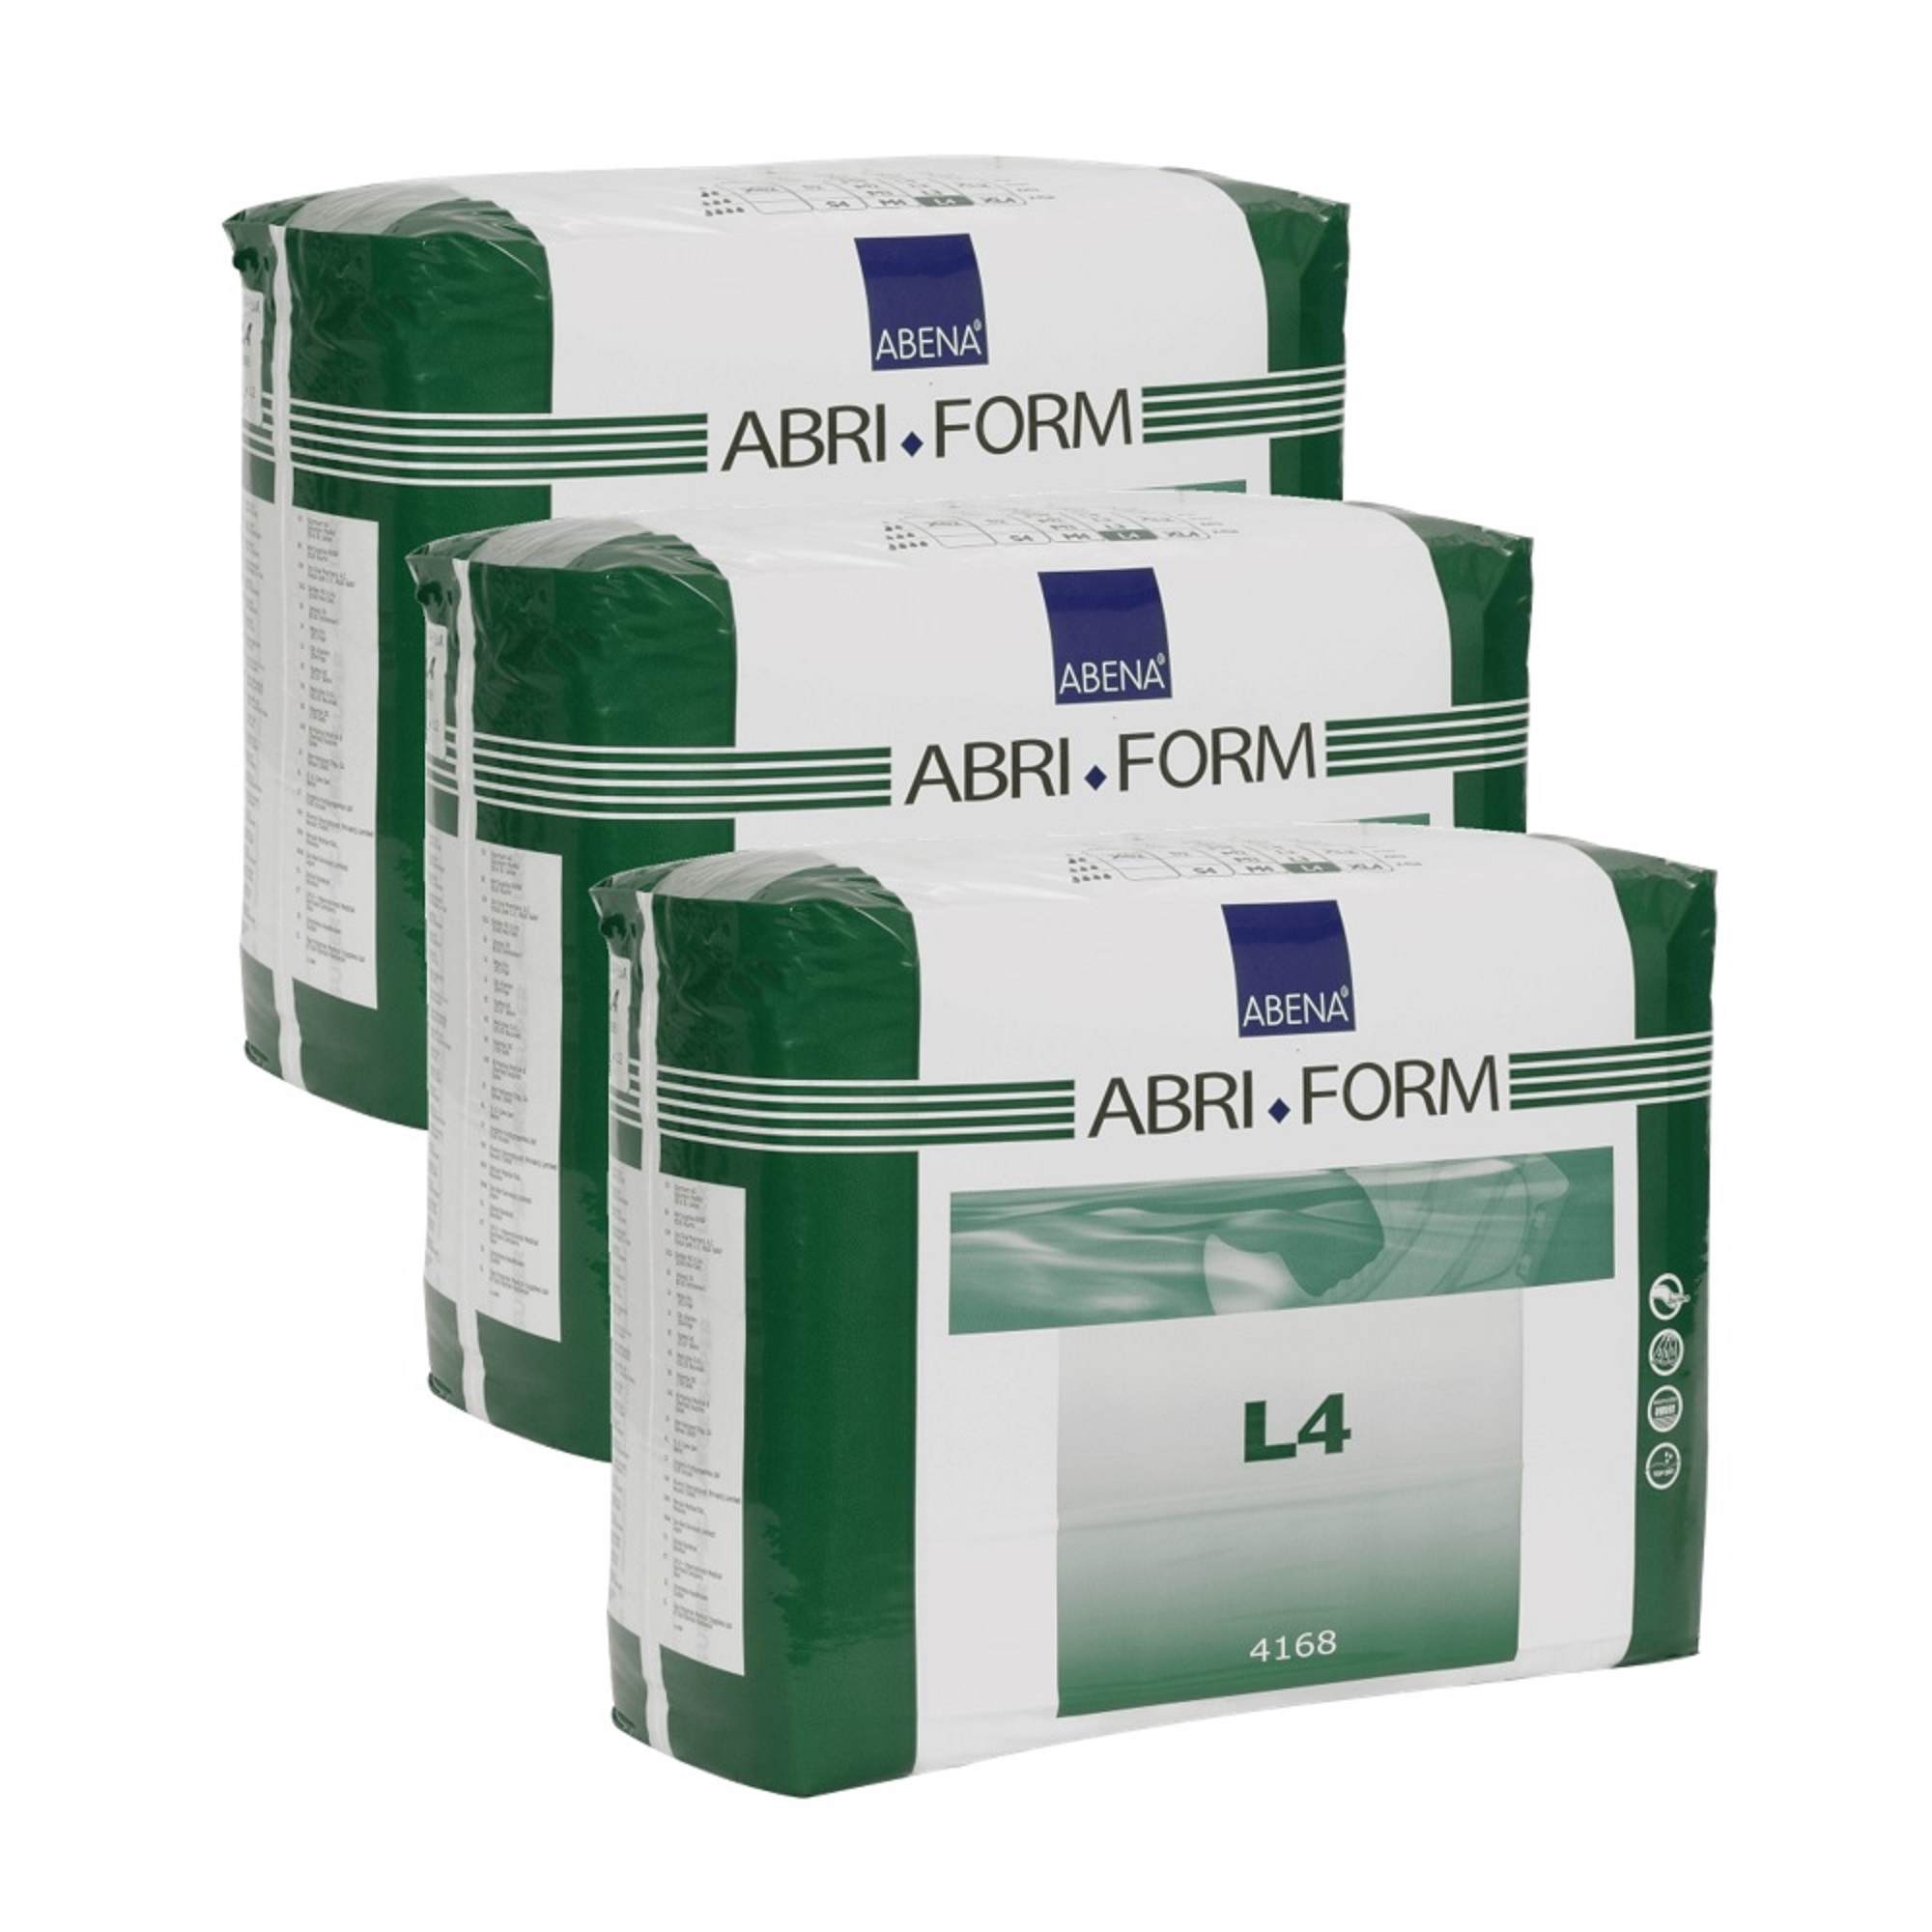 Abena Abri-Form Comfort Briefs, Large, L4, 36 Count (3 Packs of 12)